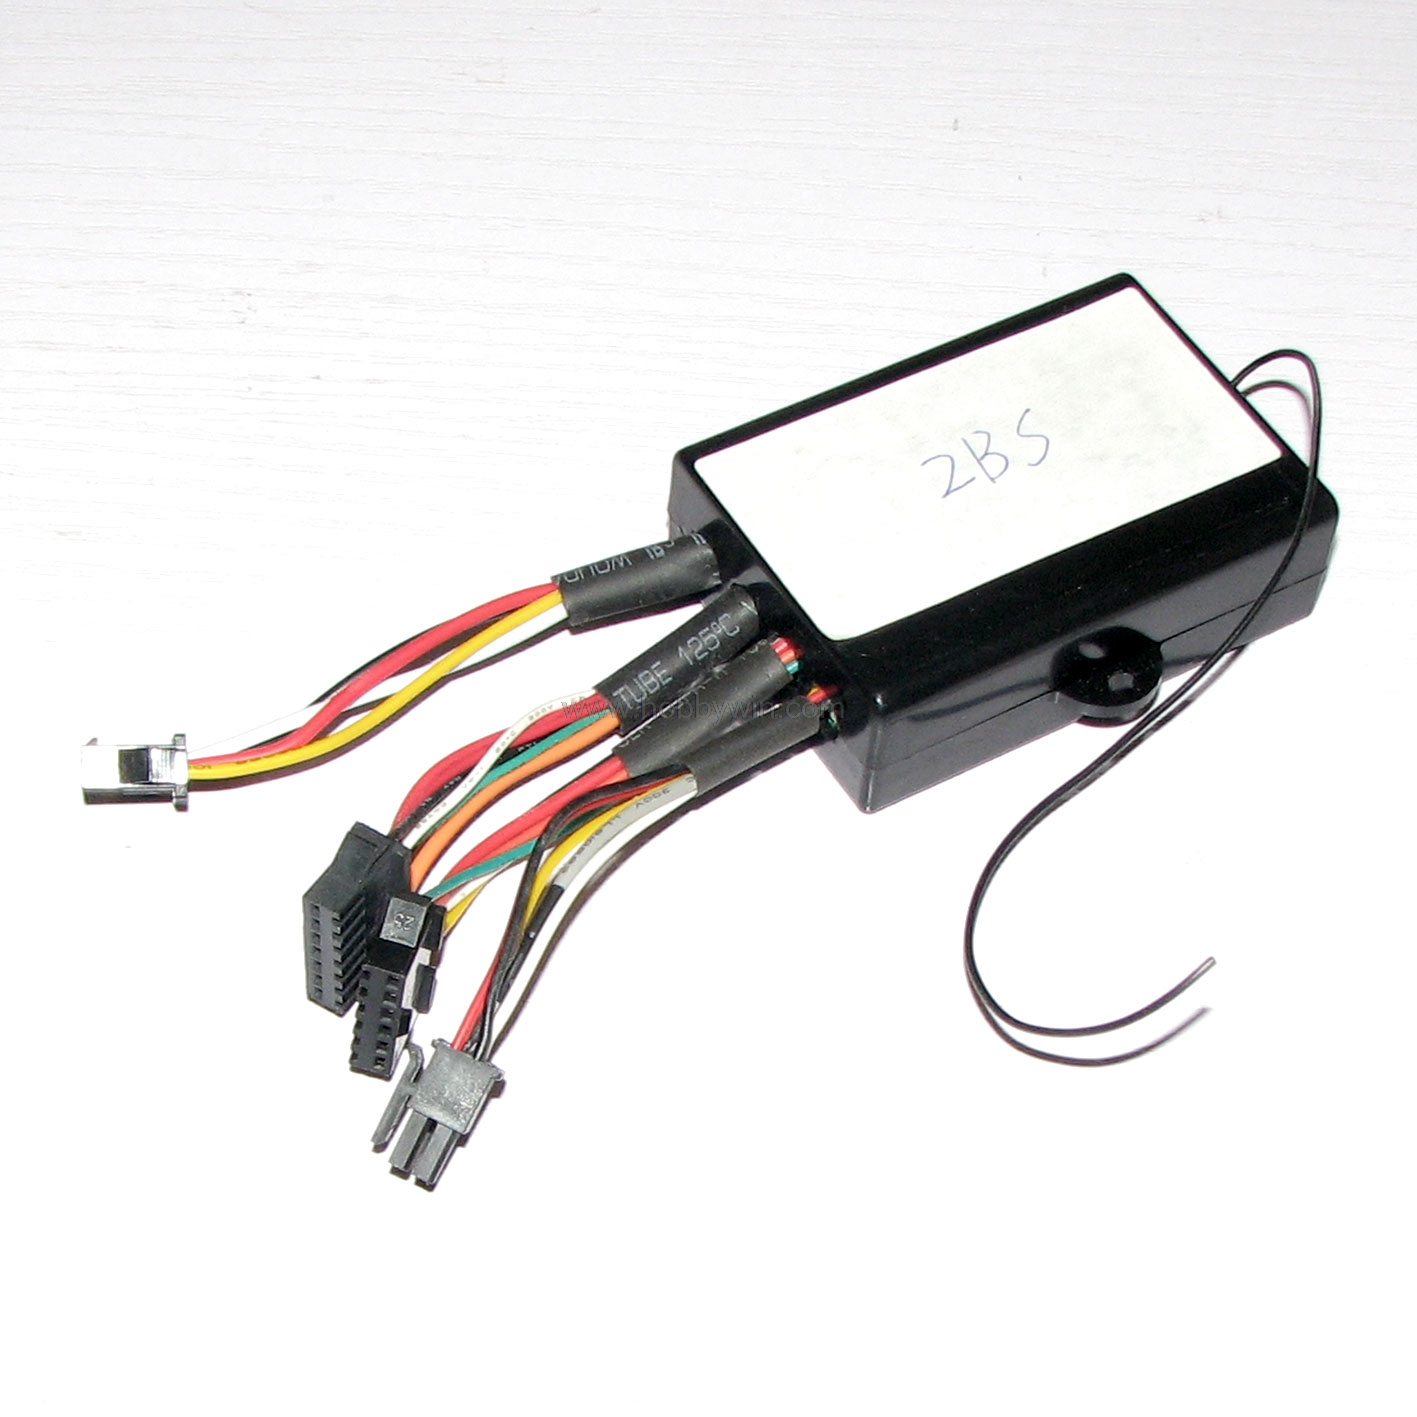 JABO part 2007BS Receiver for JABO-2BS Lead battery Bait Boat for 2BS Fishing Ship RC Bait Boat spare parts free shipping cheap jabo bait boat 2bd 32ah with carrying bag for jabo rc fishing tools